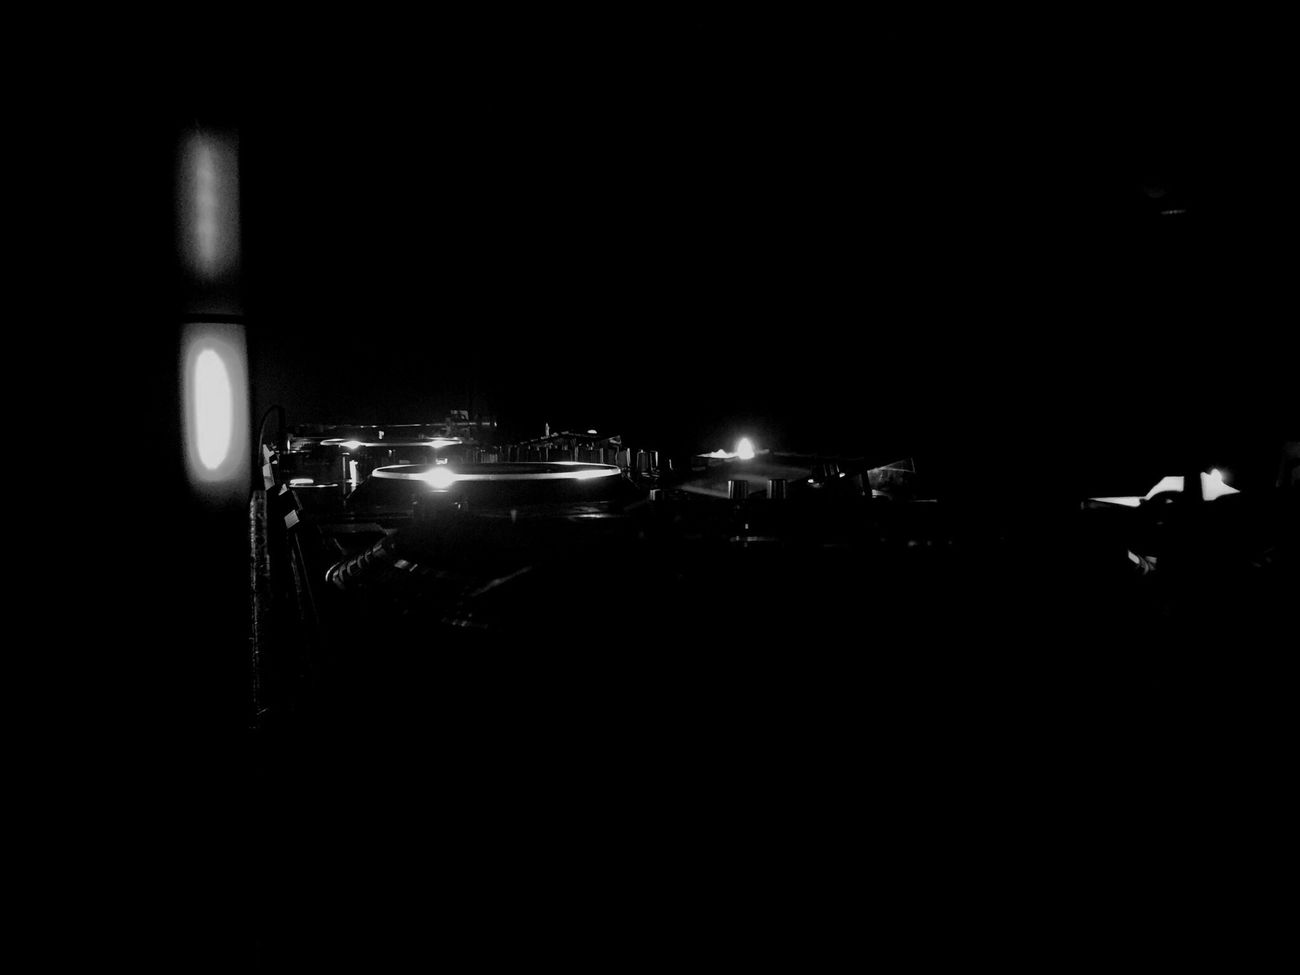 Me time again🎬 Dark Lighting Equipment Darkness Light My Favorite Place Illuminated EyeEm Best Shots Blackandwhite Black And White Bw_collection EyeEm Best Shots - Black + White Close-up EyeEm Gallery Light-Play EyeEmBestPics EE_Daily: Black And White Internet Addiction